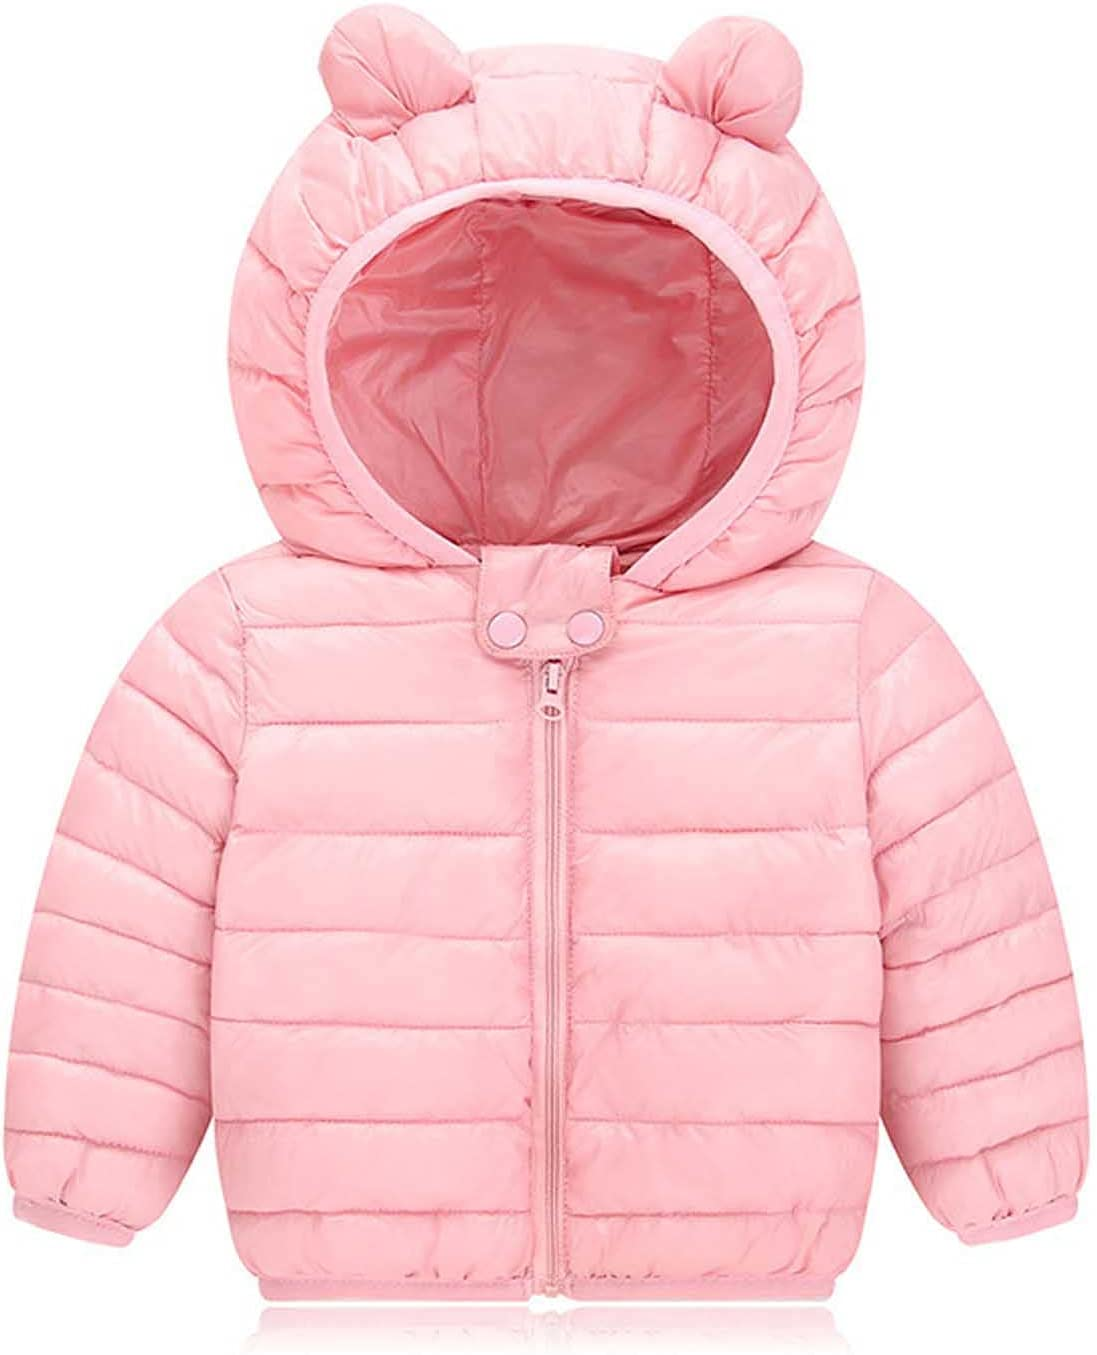 Fashion Kids Jackets-Children's Solid Color Zipper Thick Coat Padded Winter Jacket Clothes Down Jacket